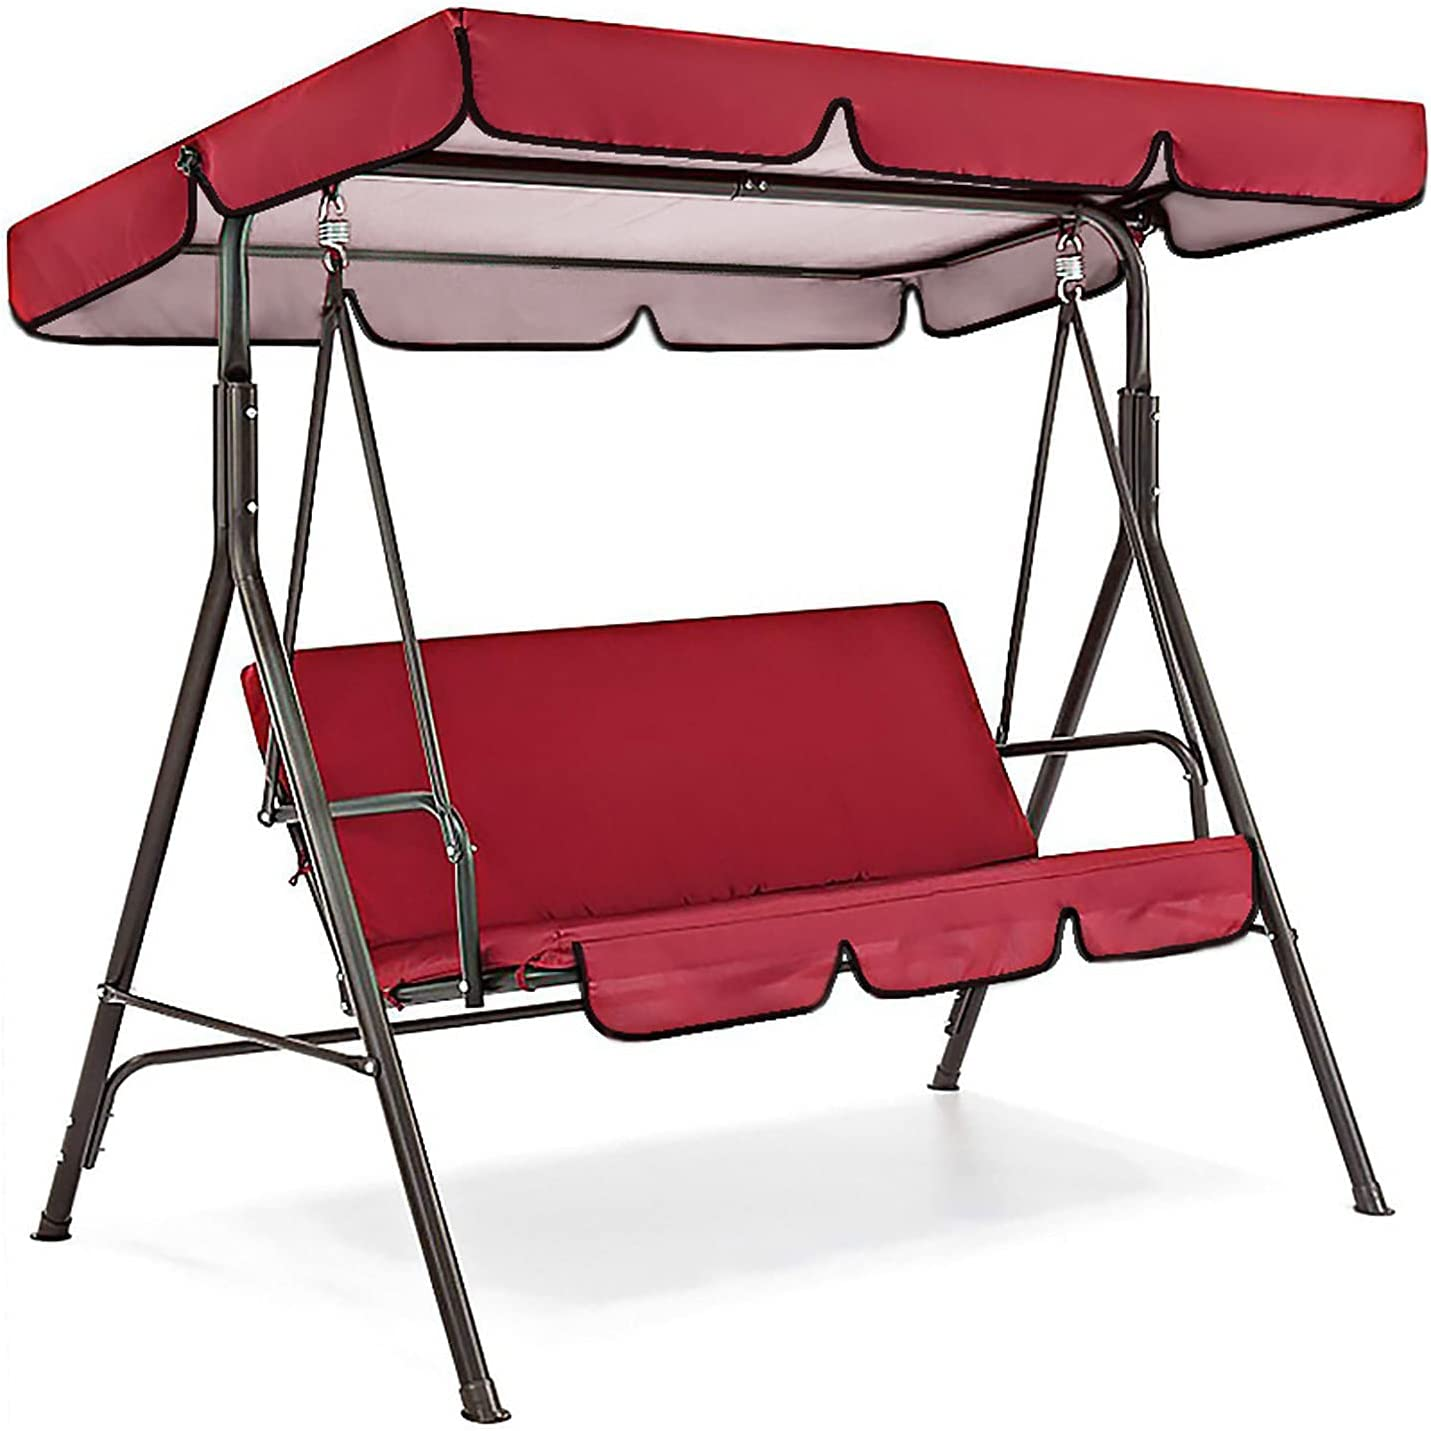 DL&VE Waterproof Patio Swing Replacement Canopy Cover,Adjustable Outdoor Swing Canopy Cover and Cushion Cover,Porch Top Cover for Yard Porch Patio Garden Swing Chair Seat Protection-Red